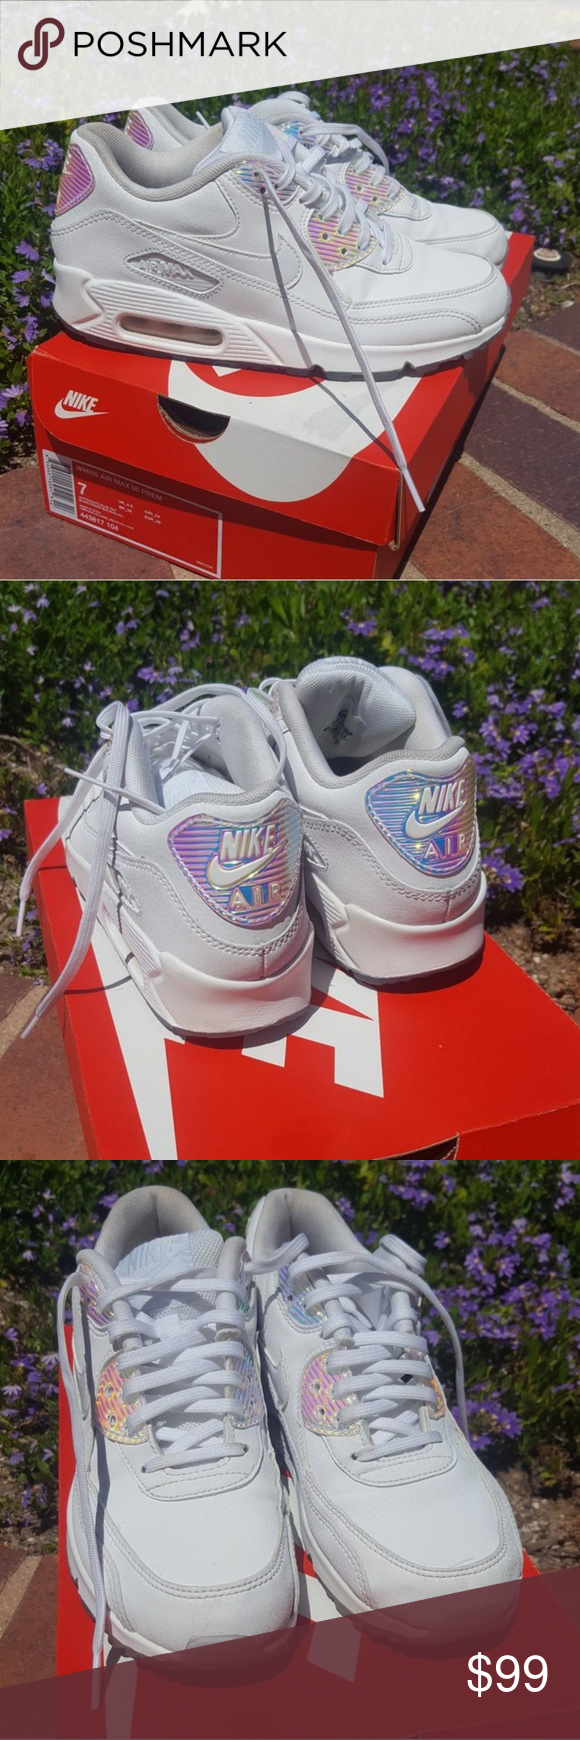 Limited Edition Nike Air Max 90 With Iridescent Nike Air Max 90 Nike Air Max Nike